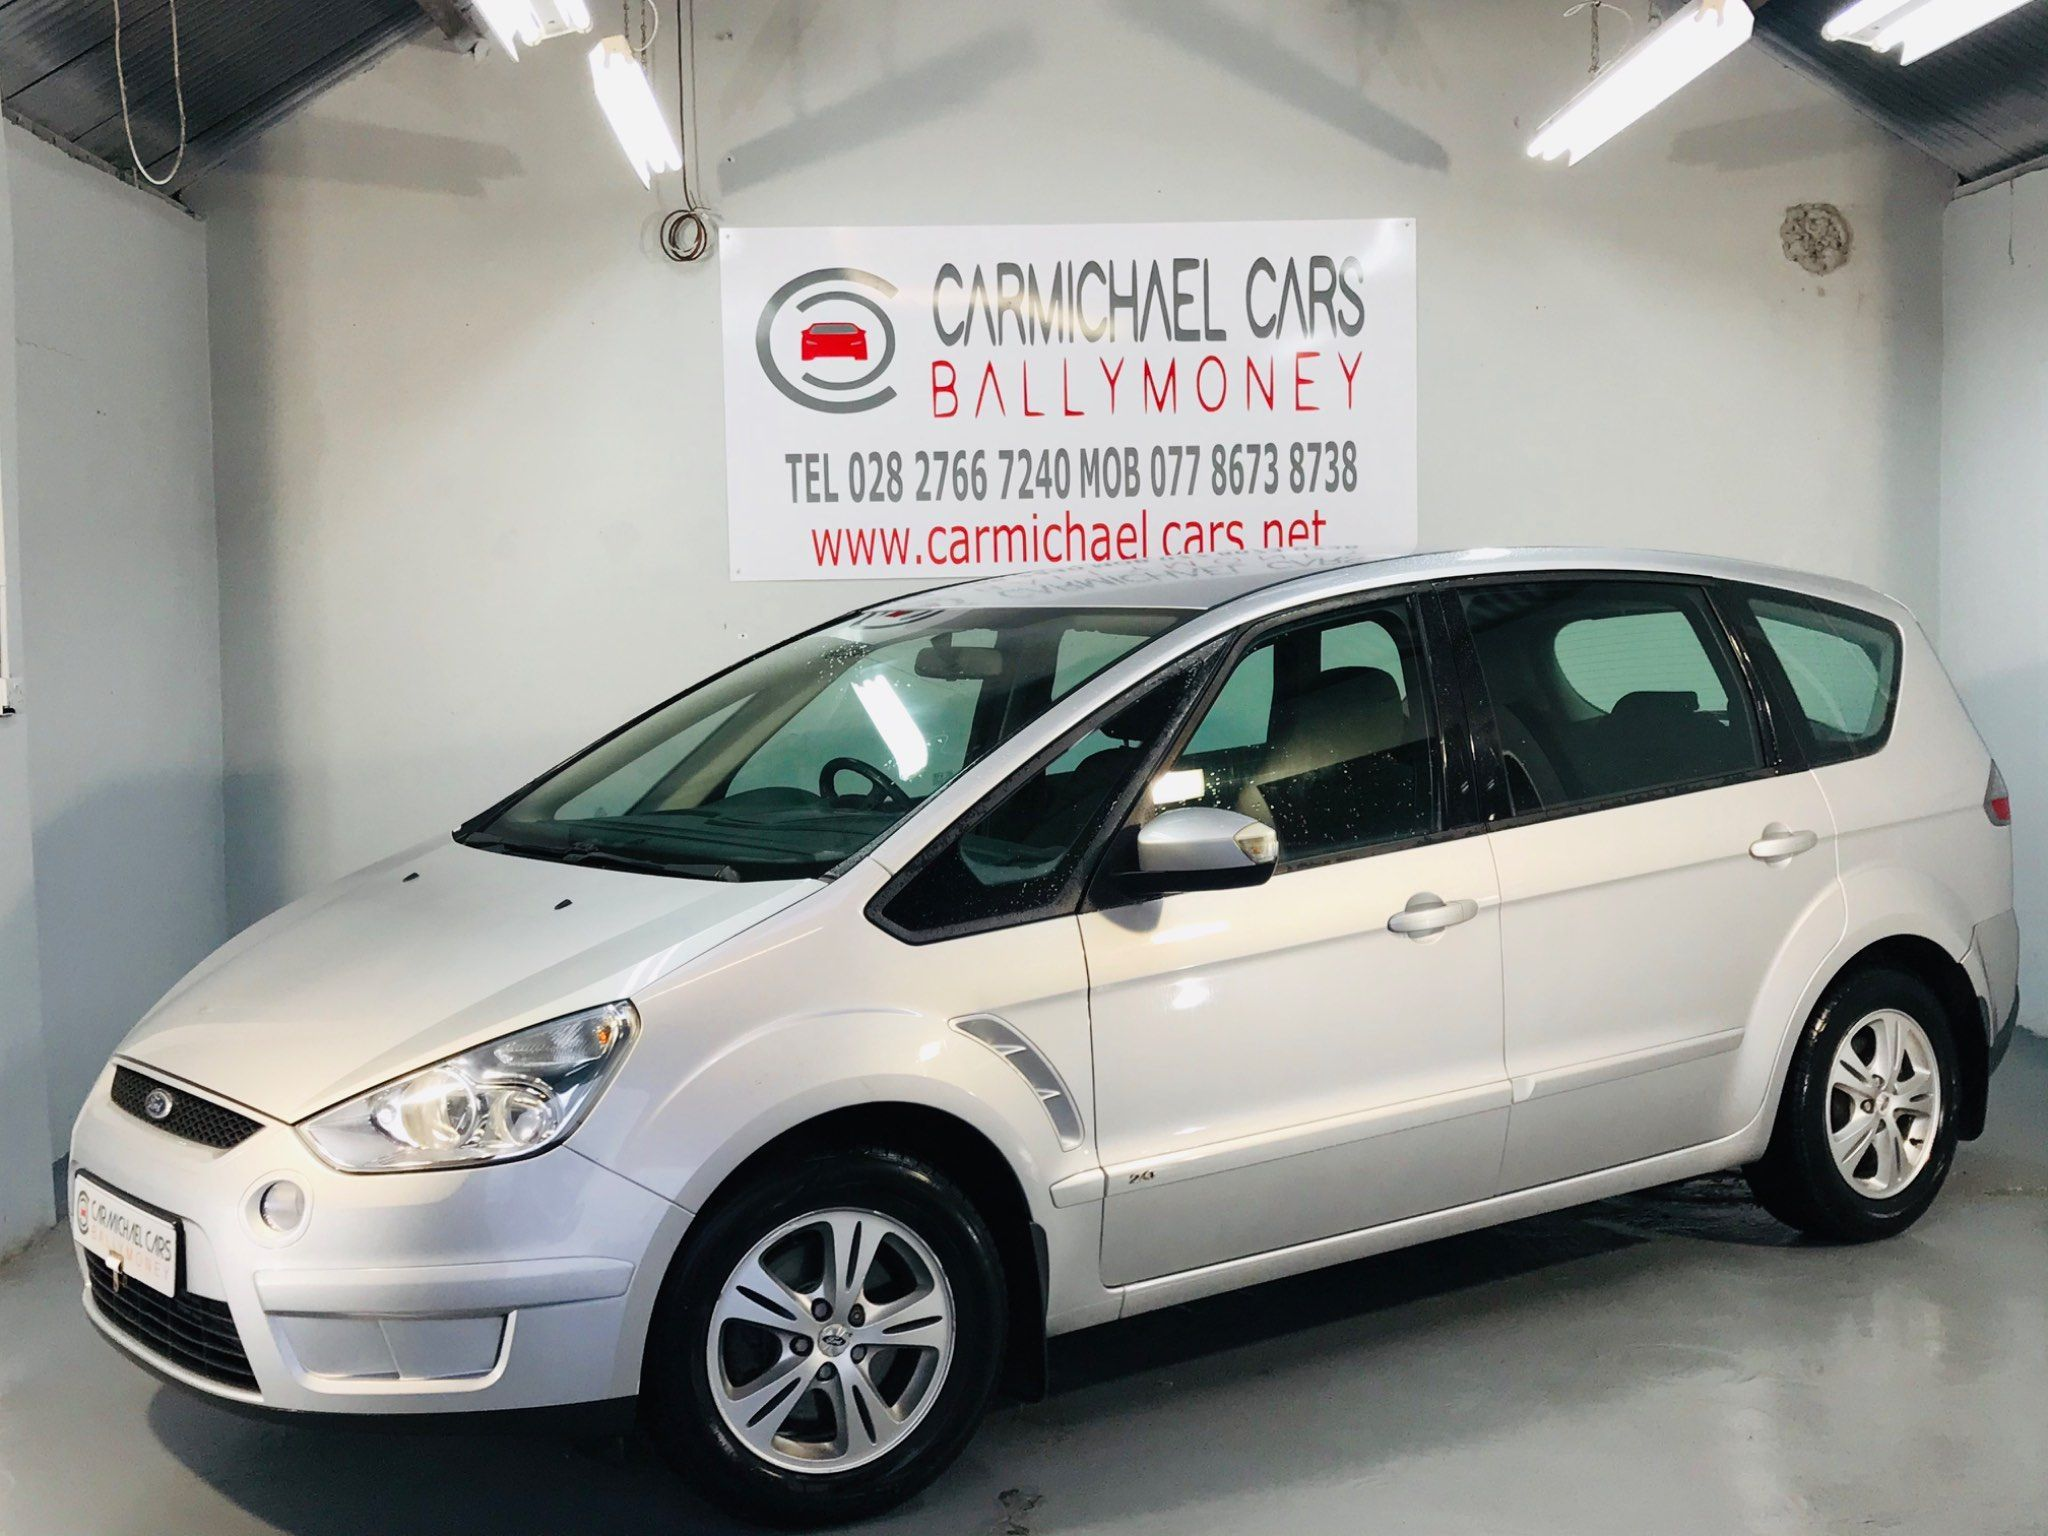 2009 FORD S-Max 2.0 TDCi Zetec Diesel Manual  – Carmichael Cars Ballymoney